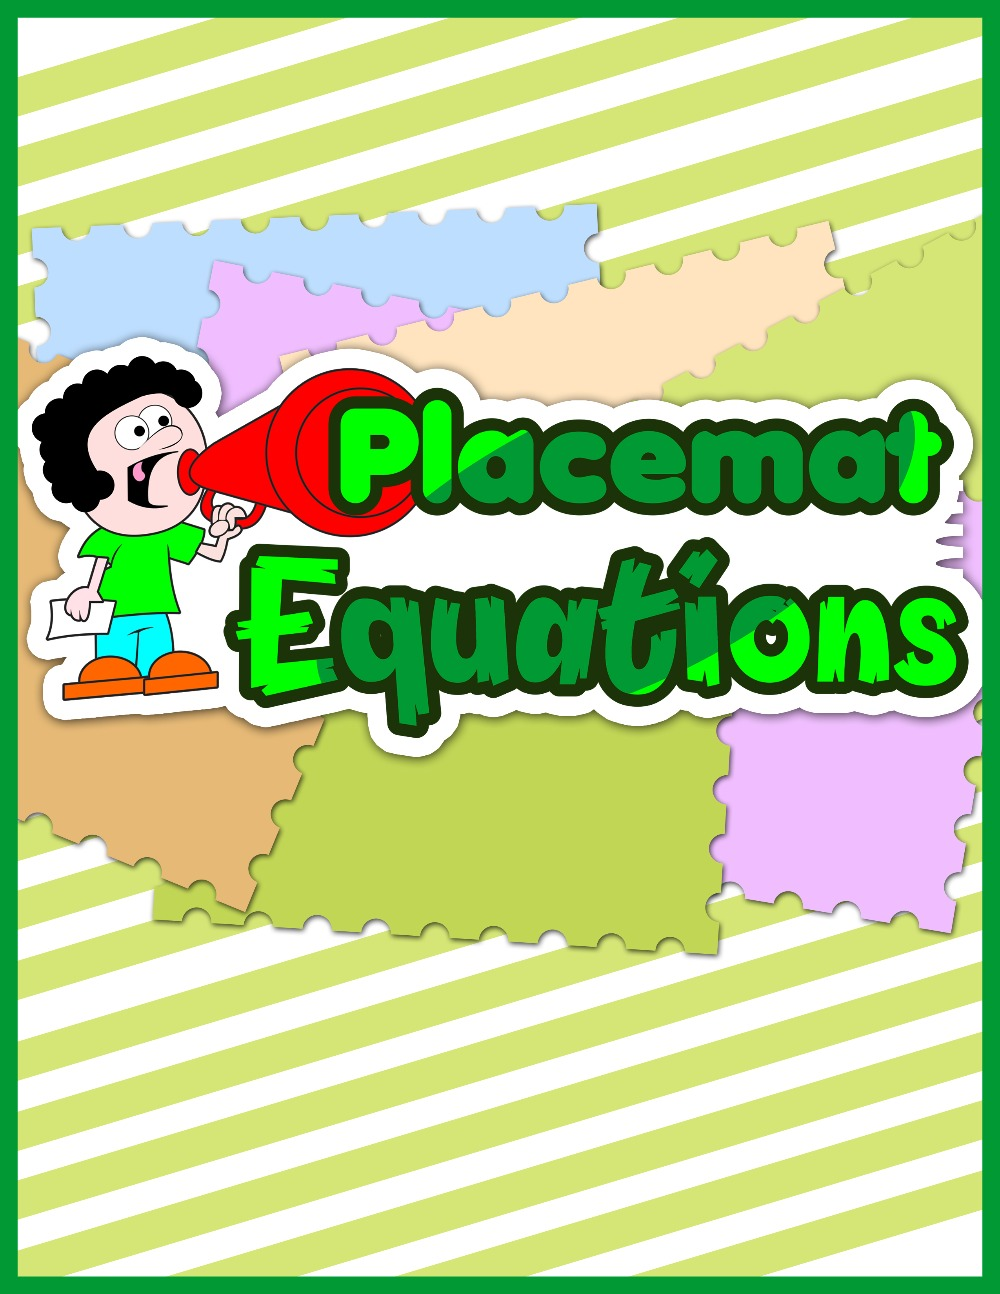 Placemat Equations